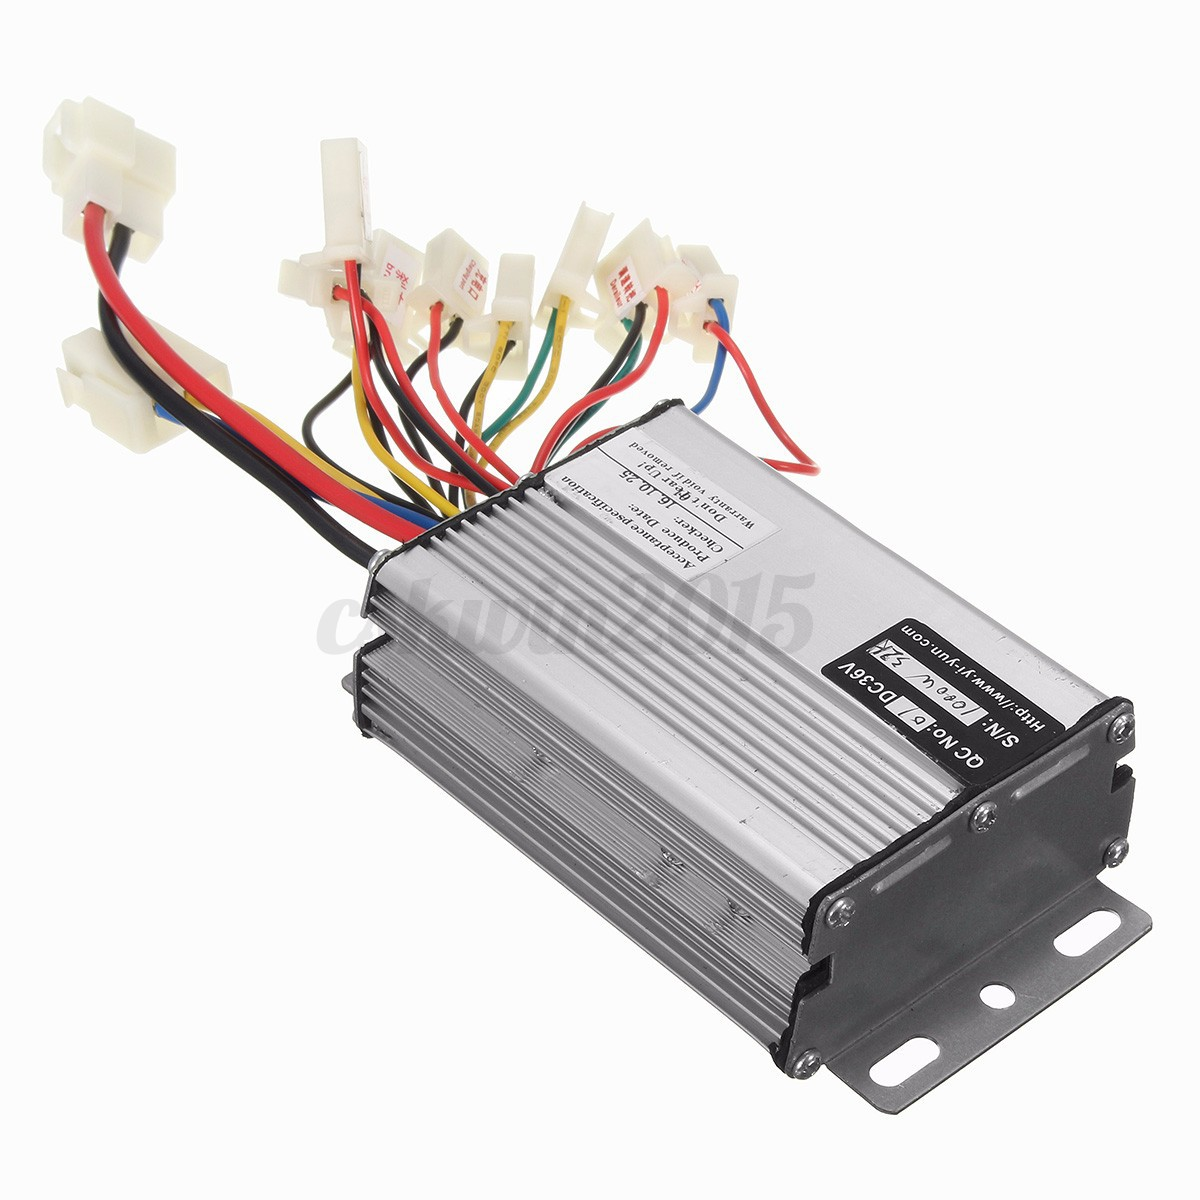 24v 36v 48v 250w 1000w electric scooter speed controller for 36v dc motor controller